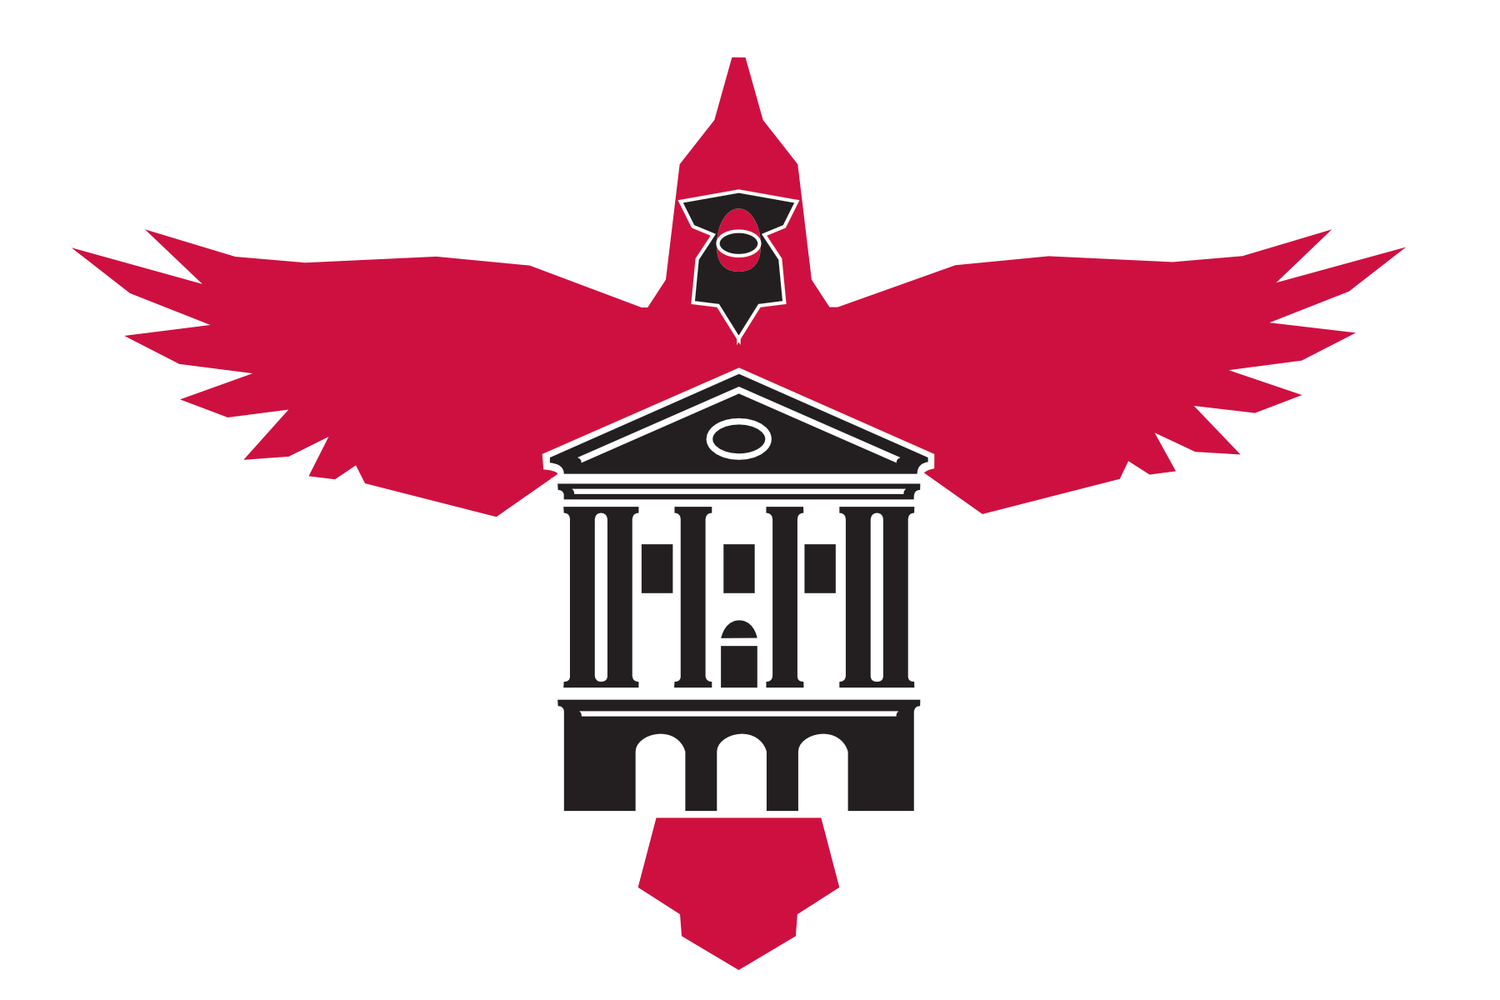 Daily Cardinal Alumni Association